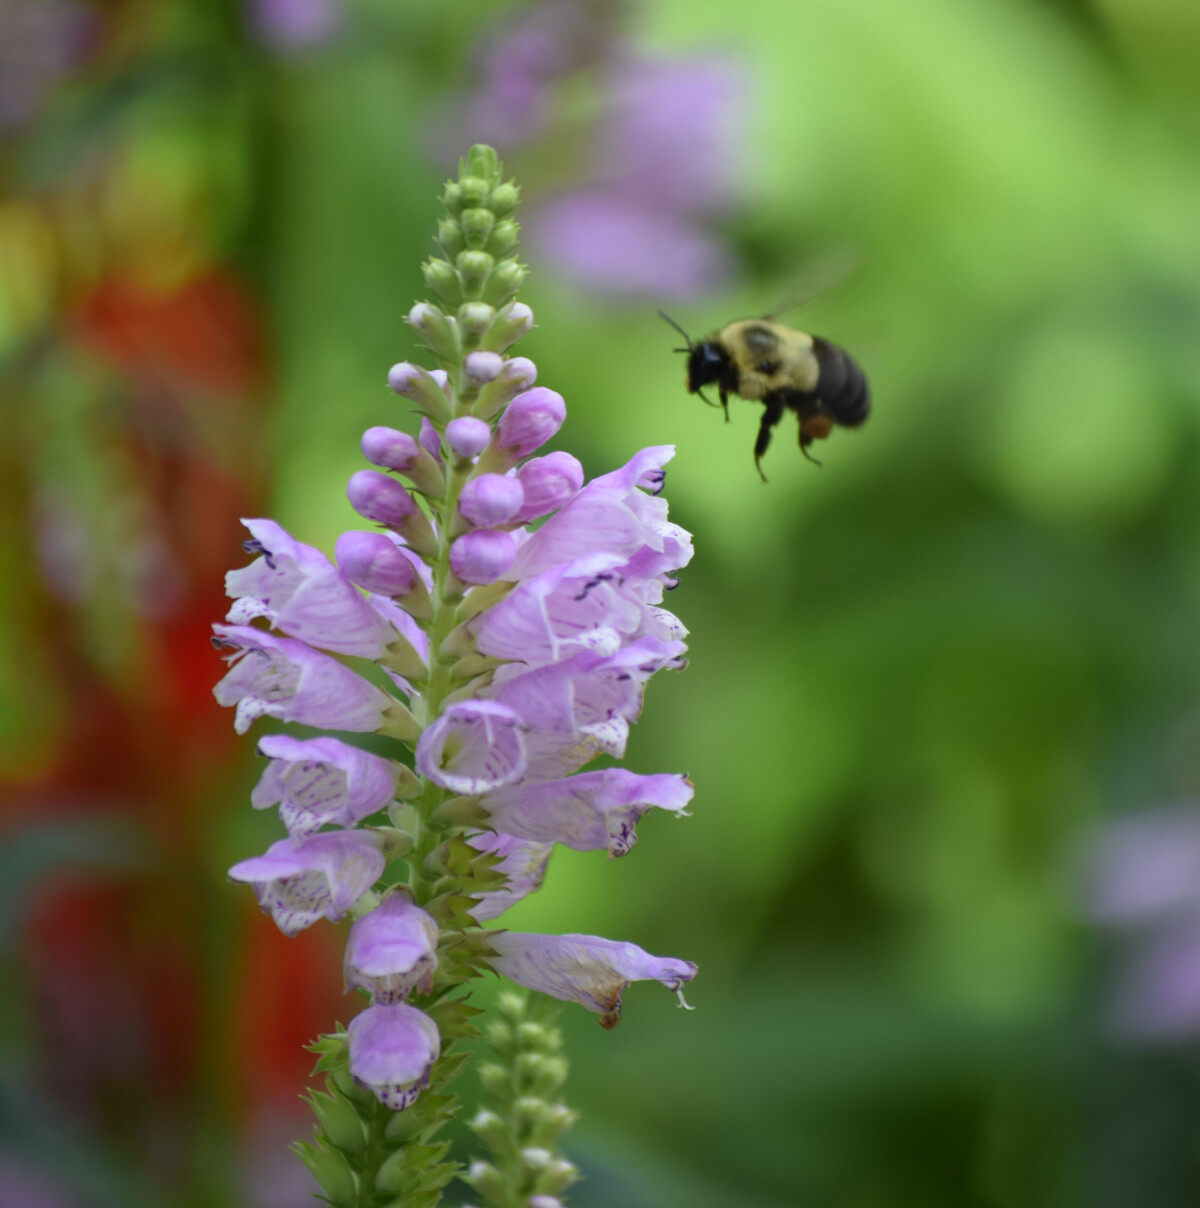 Bee approaching flowers of an Obedient Plant